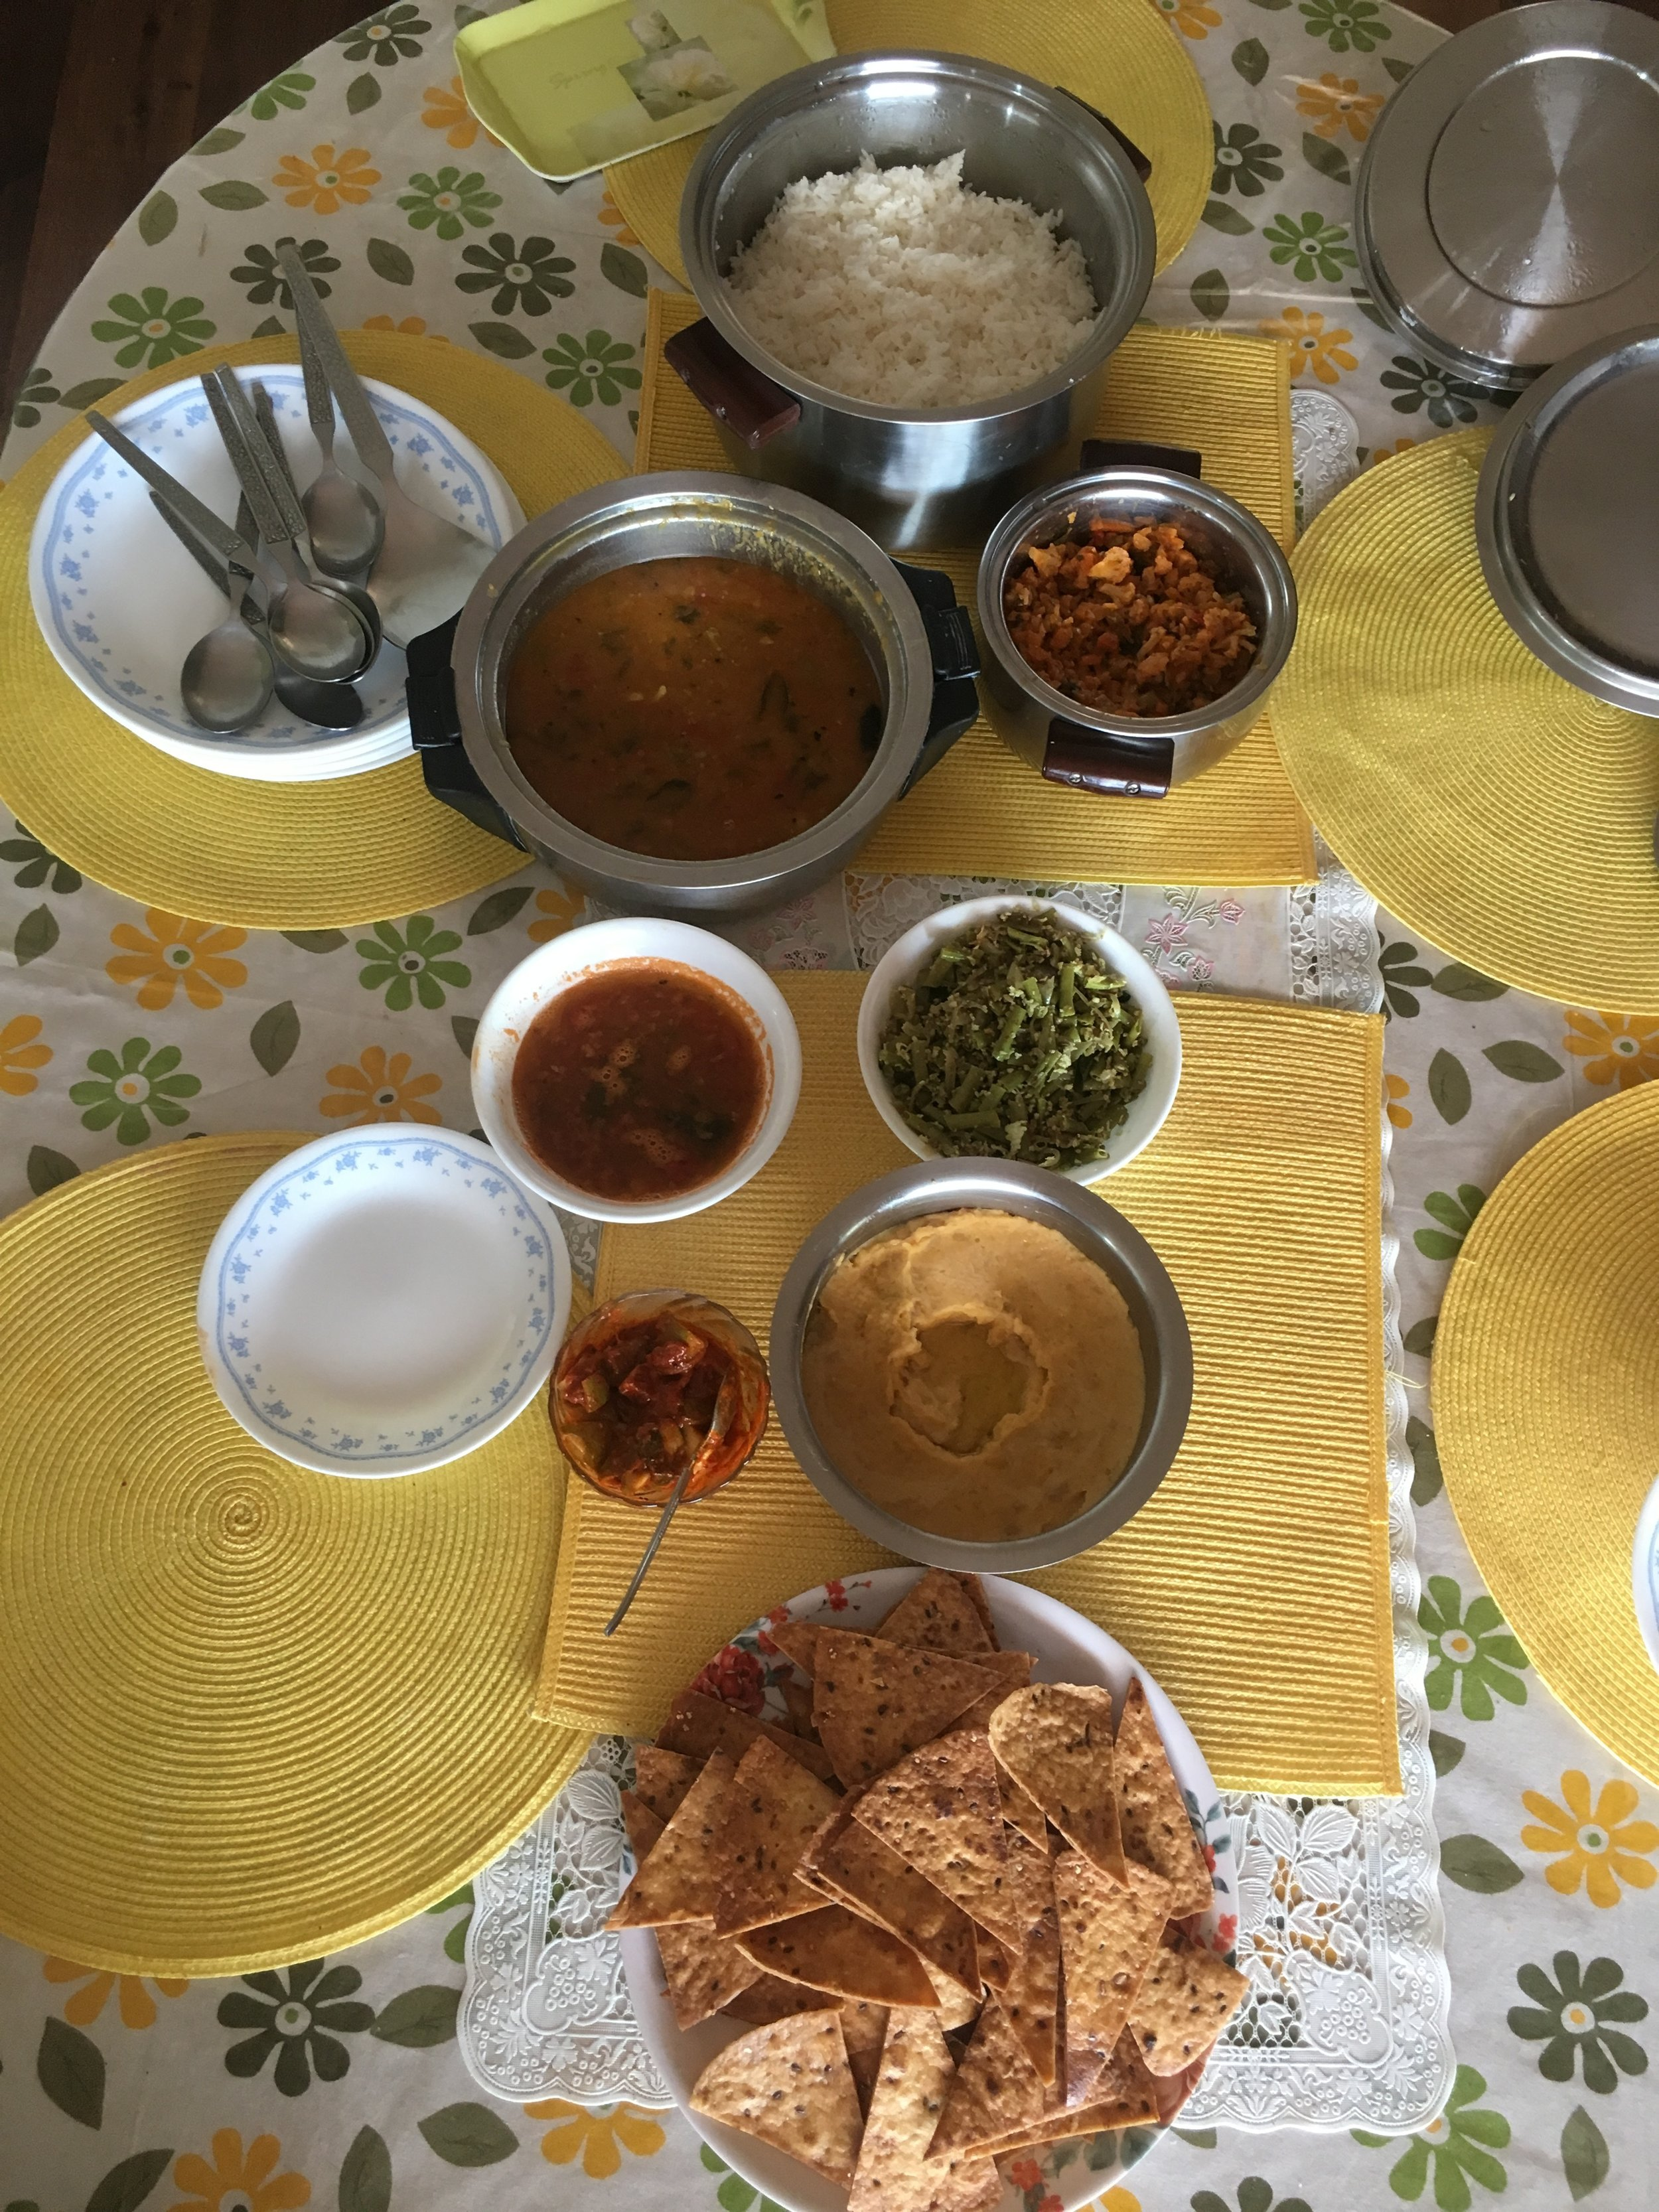 Typical lunch spread cooked by our host's chef.